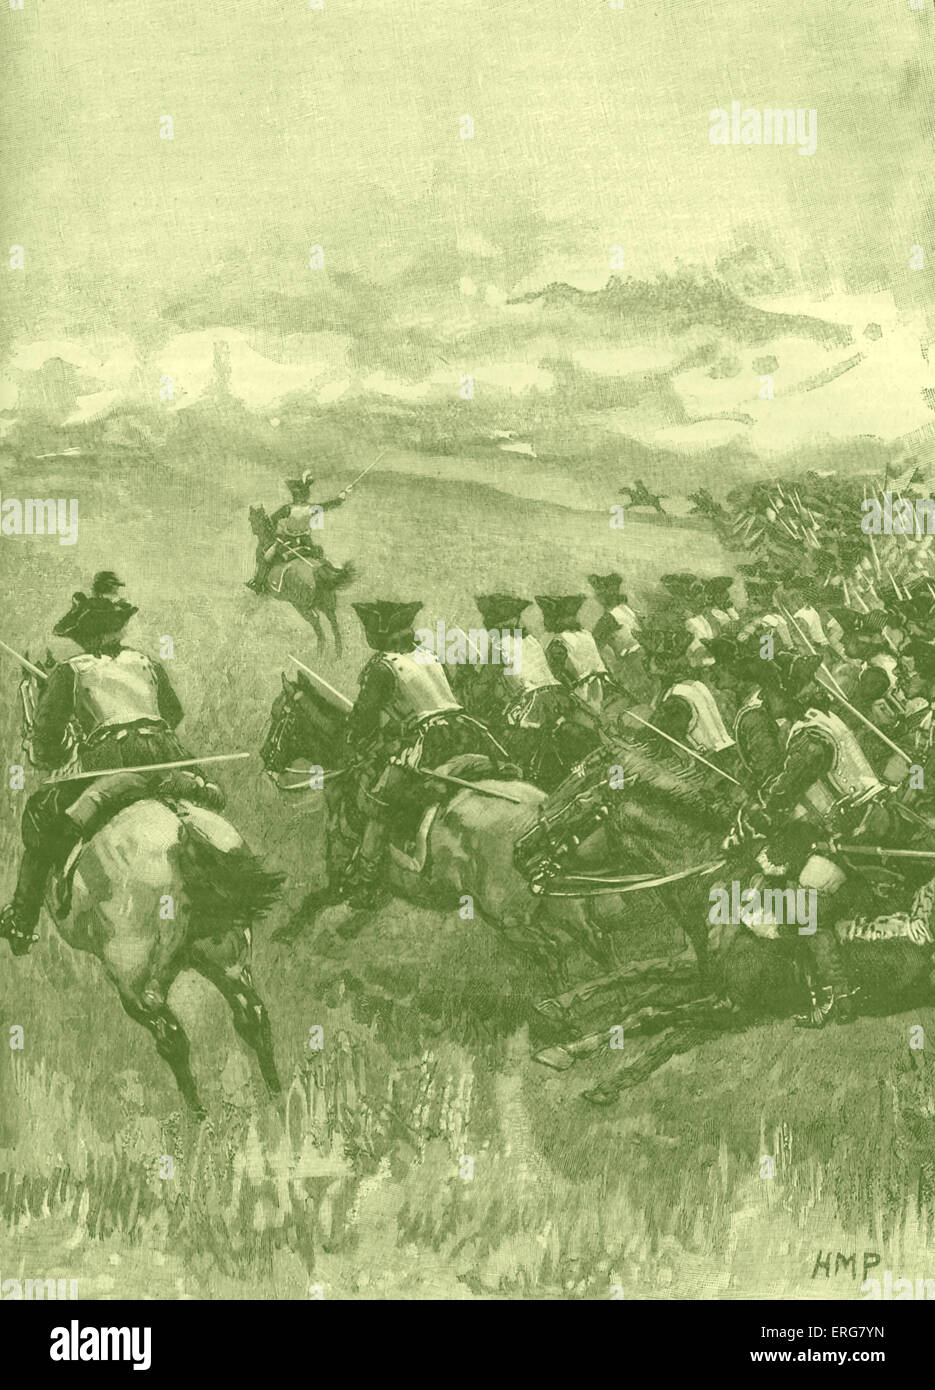 Battle of Blenheim: charge of Marlborough's horse, 13 August 1704. Also known as the Second Battle of Höchstädt. - Stock Image